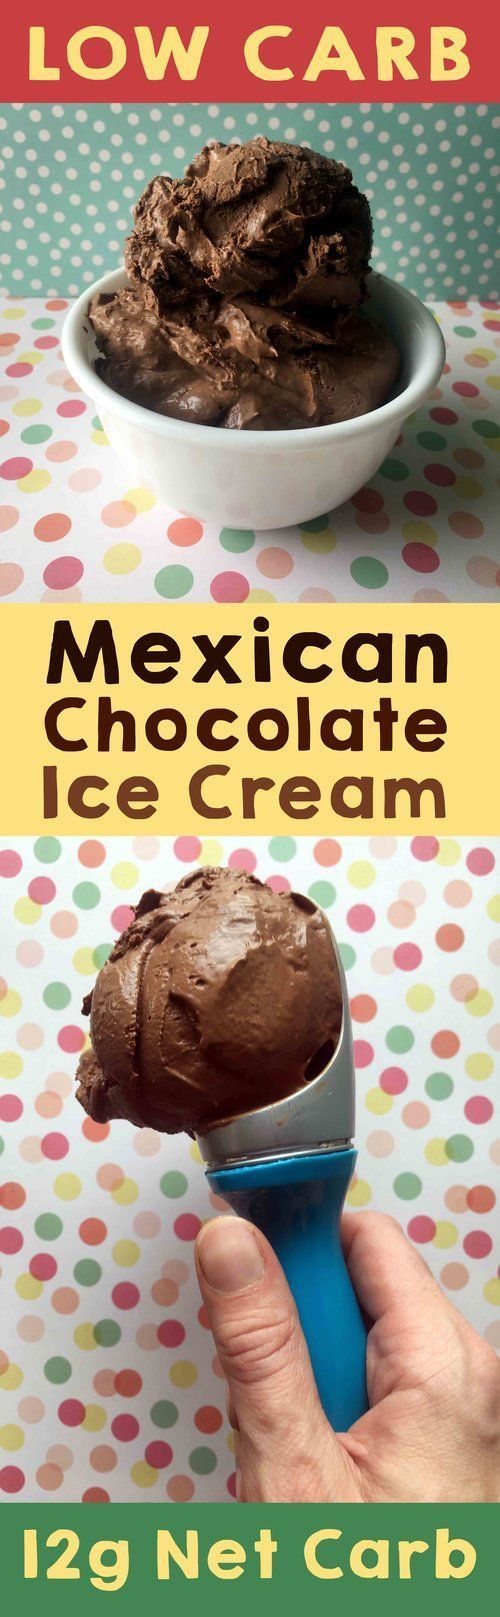 This recipe for Mexican Hot Chocolate Ice Cream is Low Carb, Keto, Banting, Paleo, Atkins, LCHF, Sugar Free and Gluten Free. It's also rather tasty.